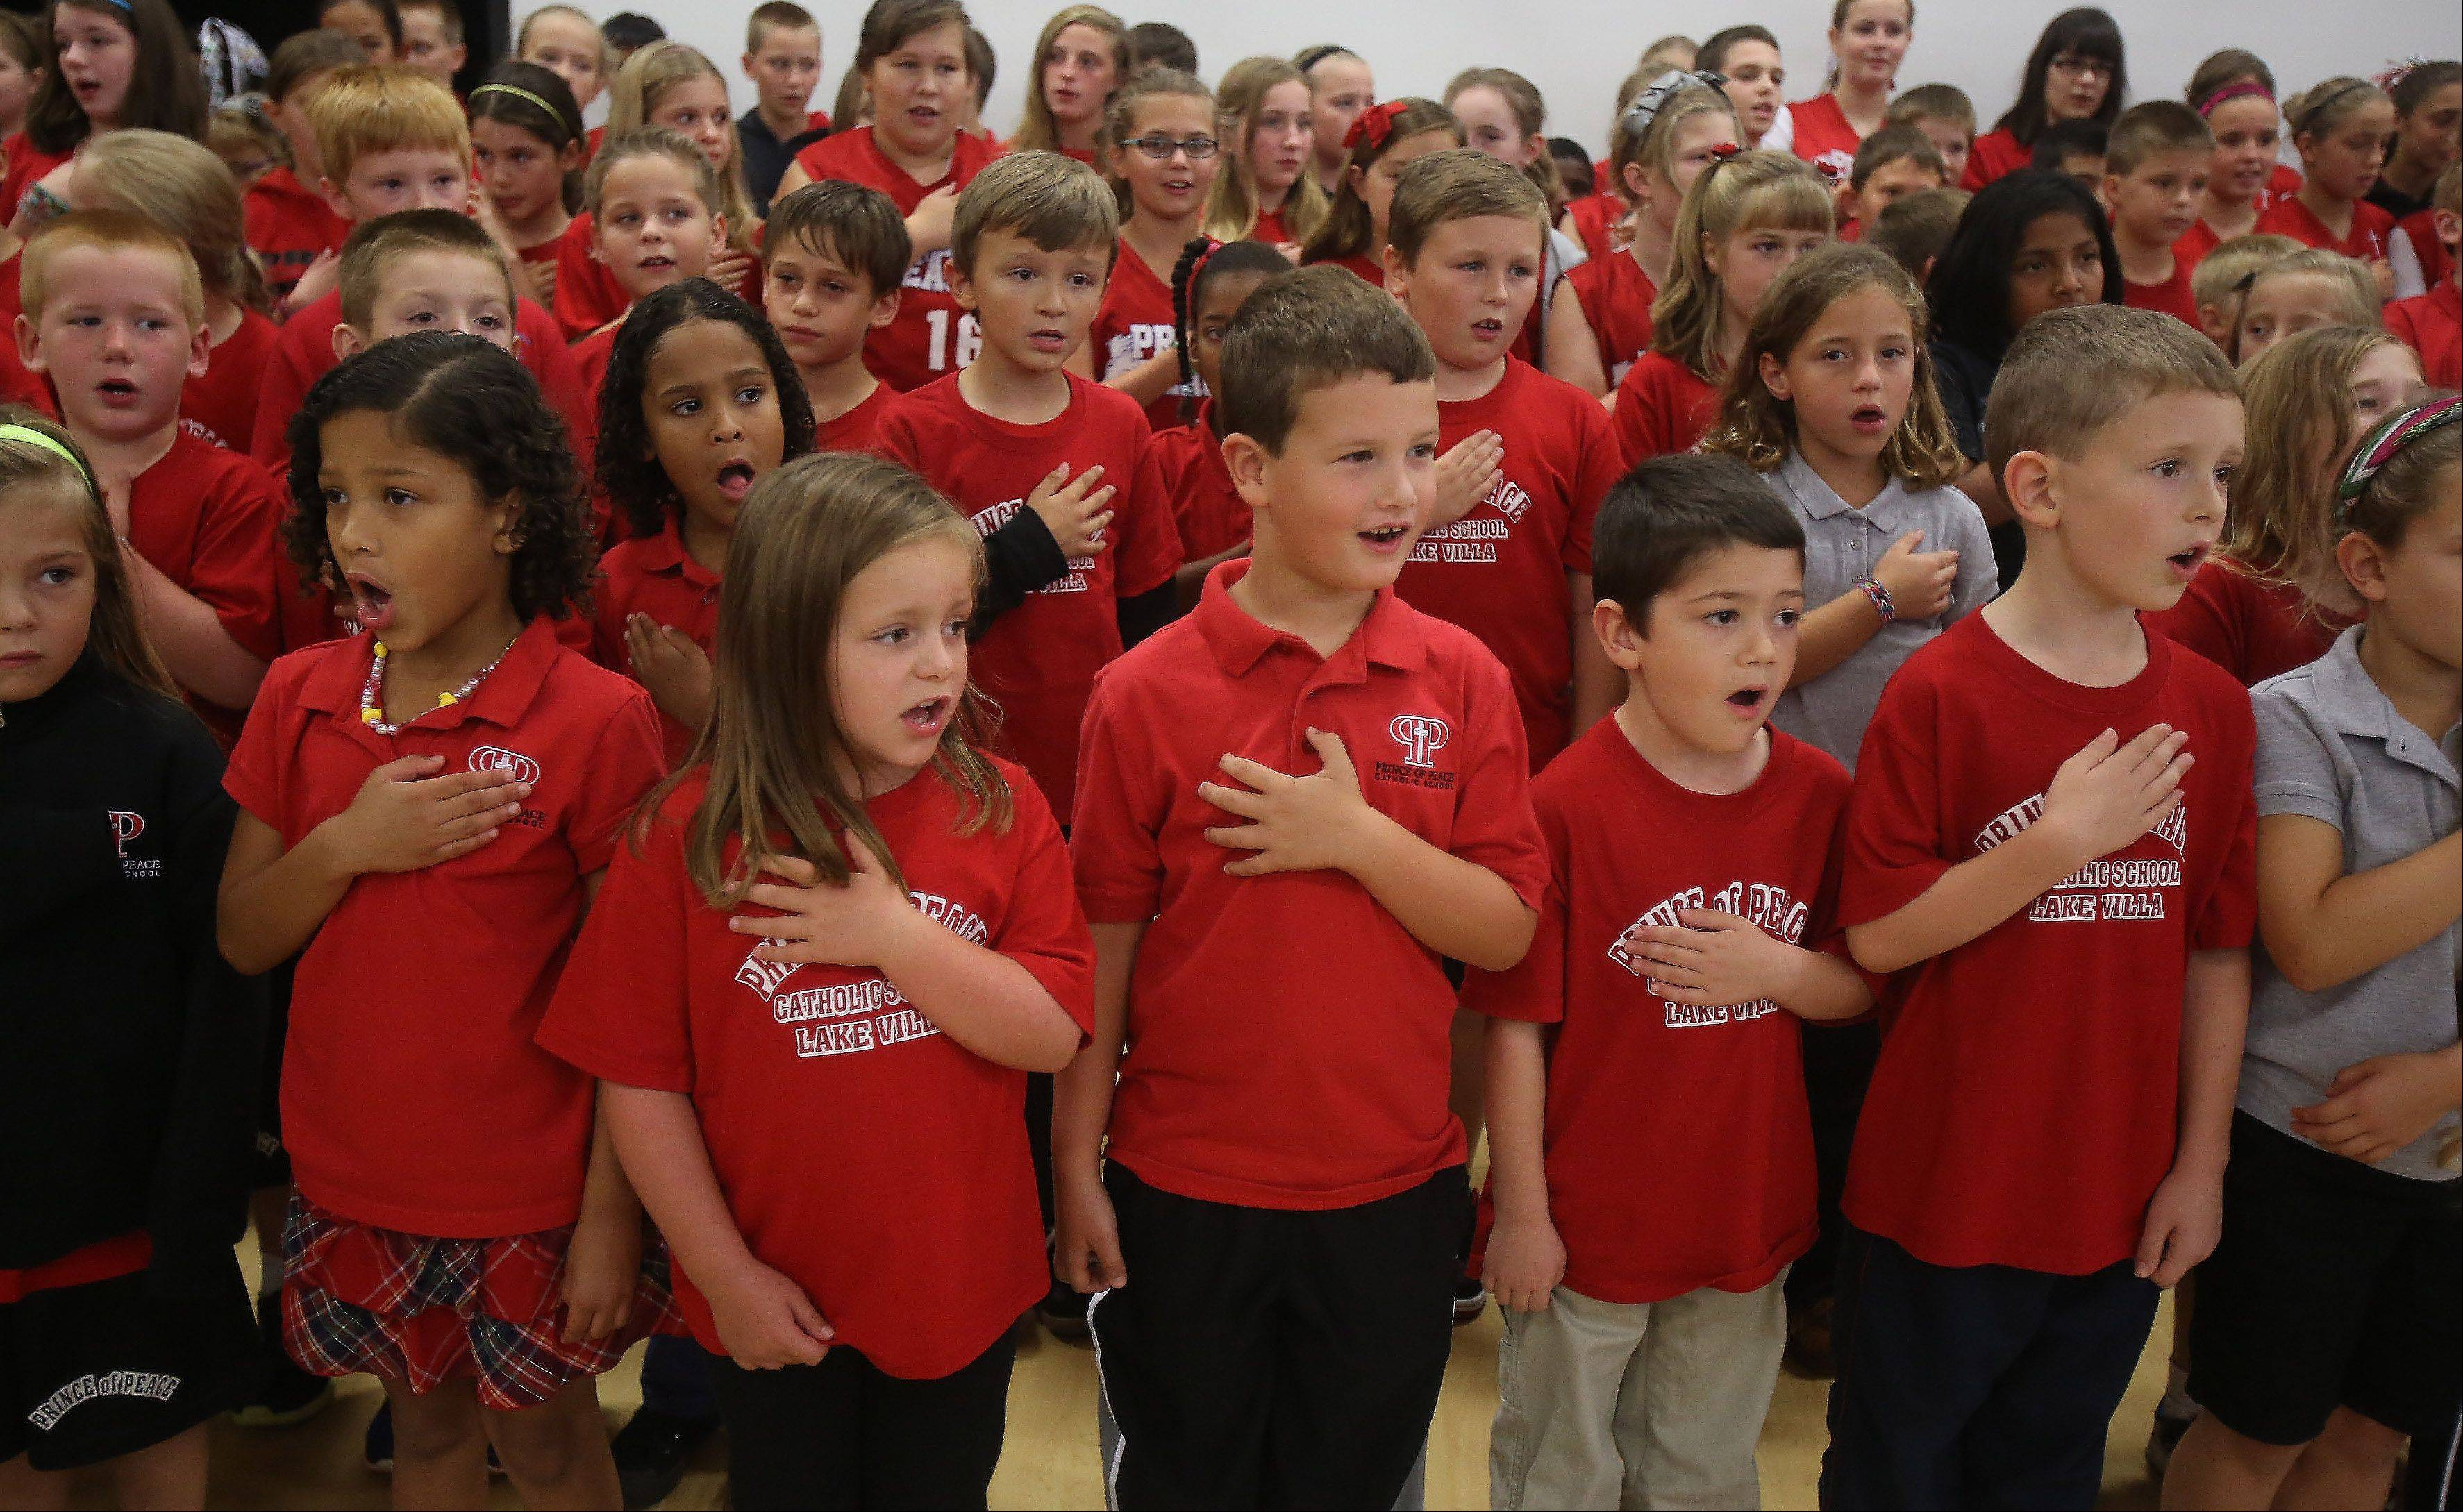 Young Redhawk students sing the national anthem during the dedication ceremony Sunday at Prince of Peace Catholic Church in Lake Villa. The church built a new $5.3 million, 42,00-square-foot Parish Life Center, that included a new gym, preschool and kindergarten classes, a library, fine arts room, computer classrooms, and meeting rooms.